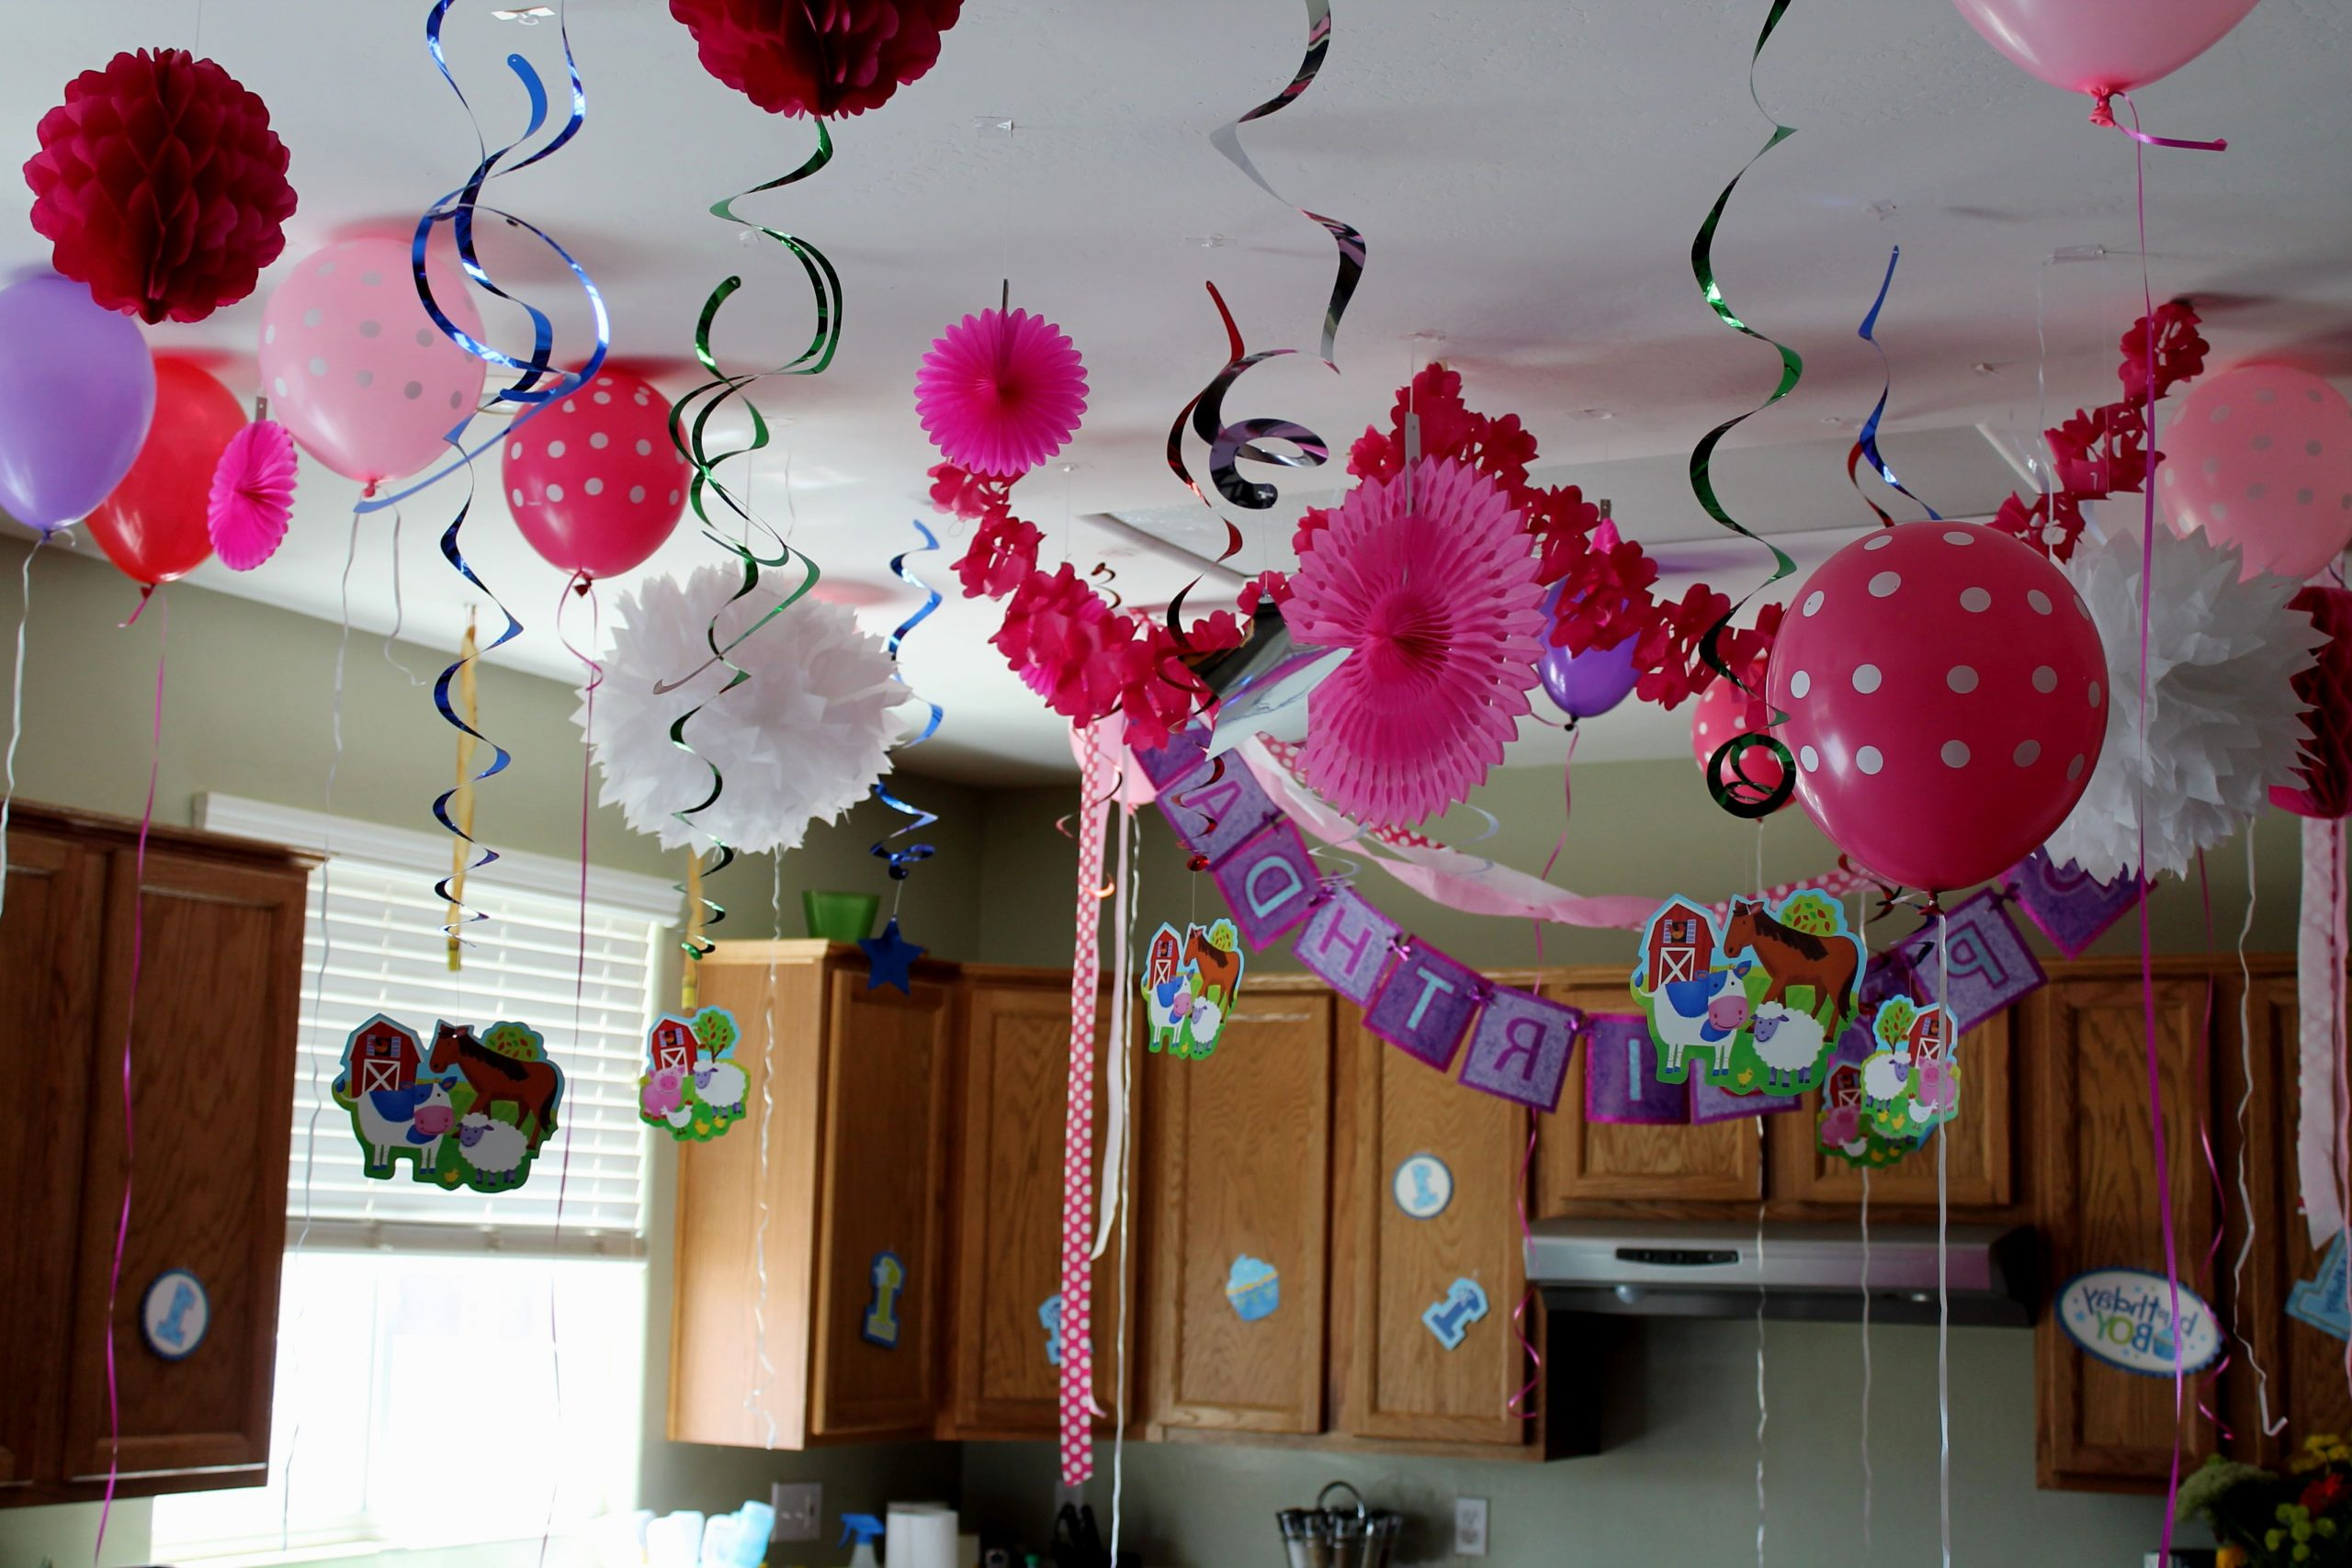 Special Decoration for Birthday through Simple Things